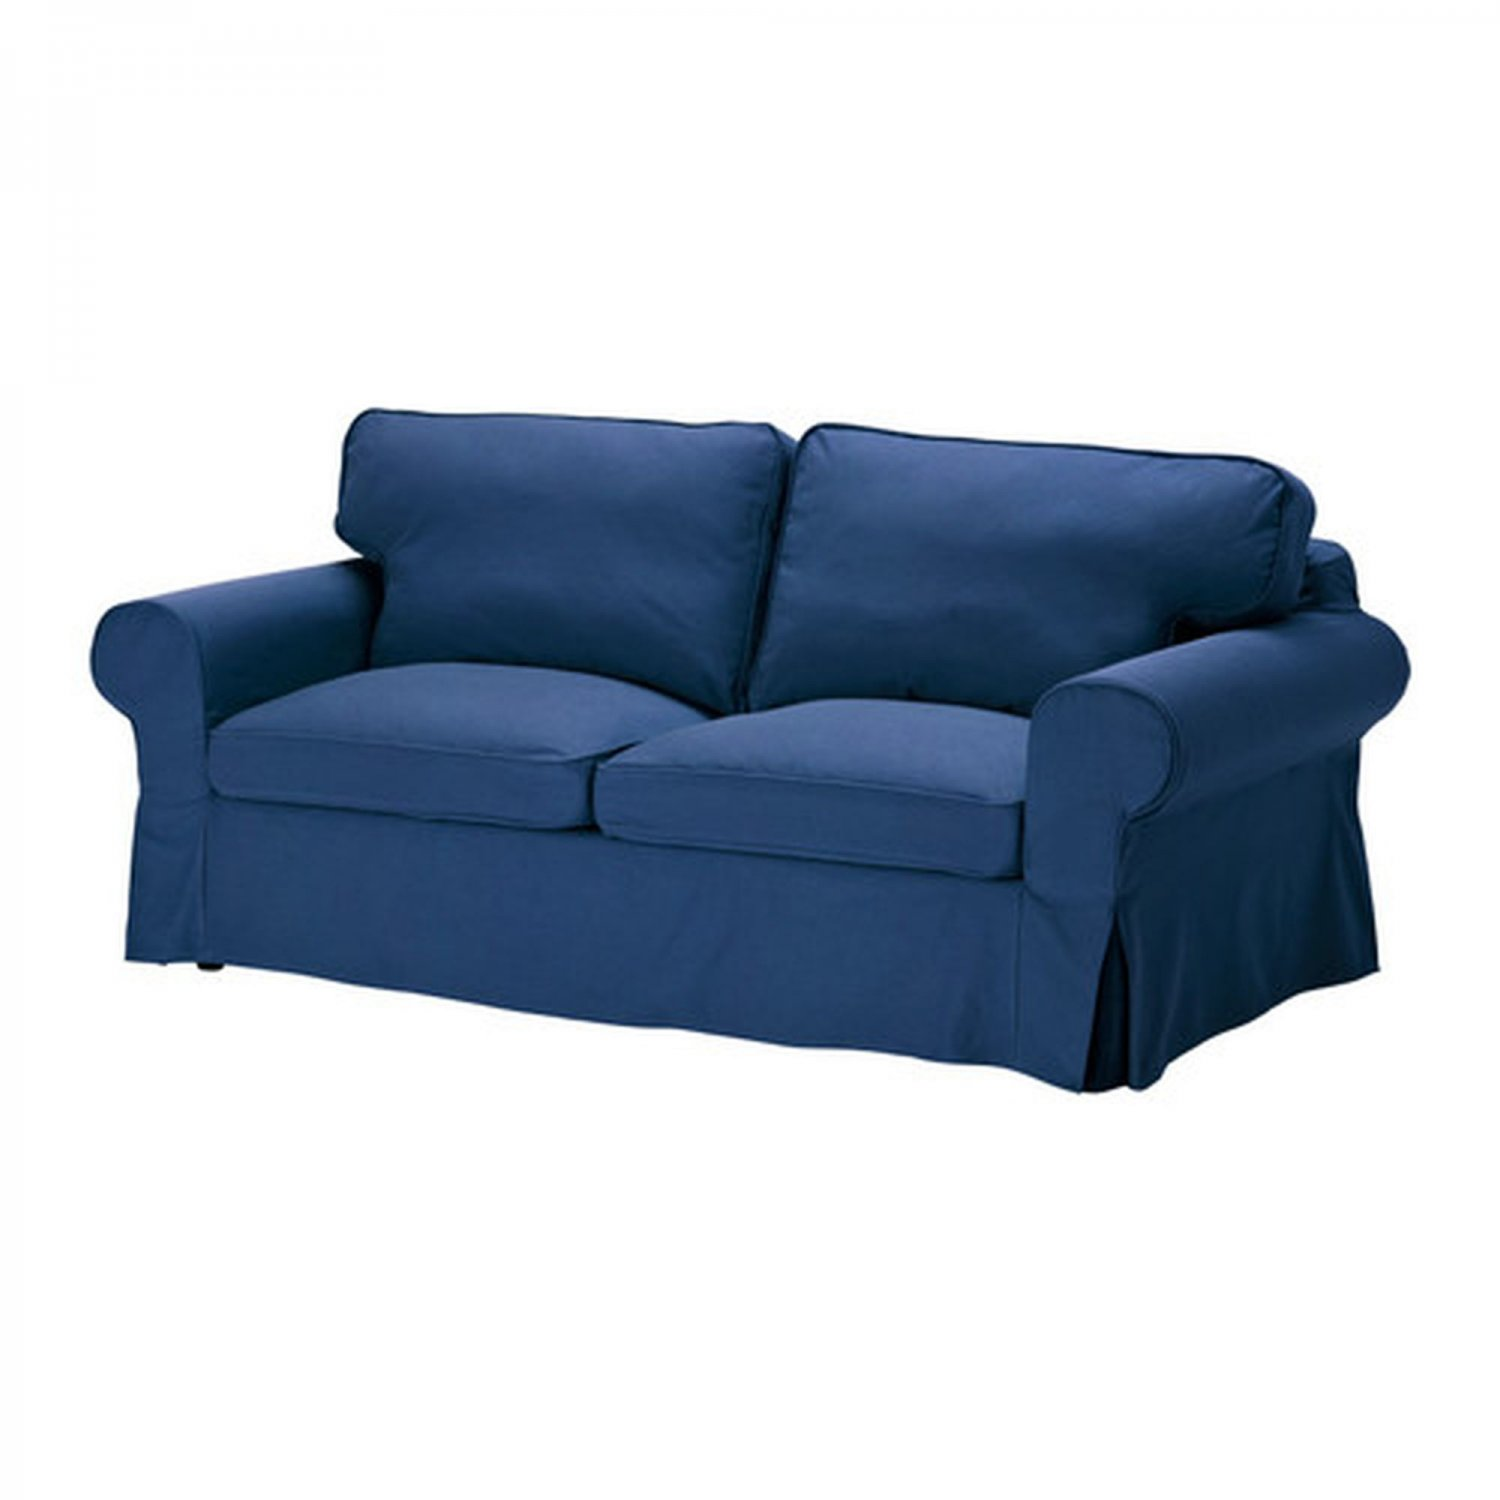 Ikea ektorp 2 seat sofa cover loveseat slipcover idemo blue Cover for loveseat